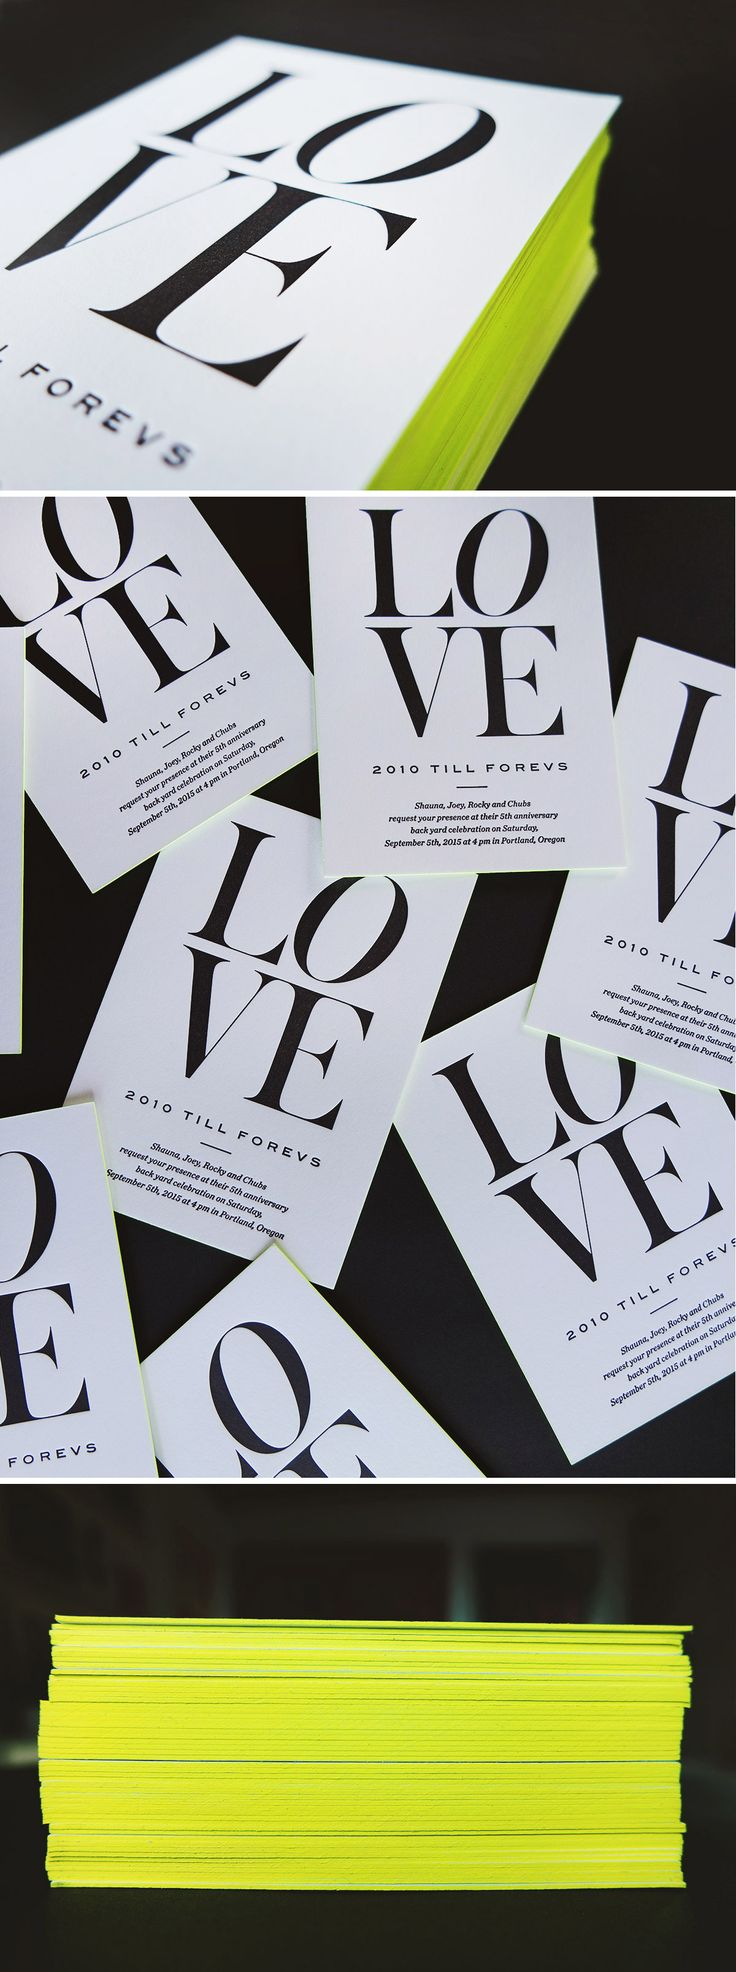 490 best Graphic Design   Print & Collateral images on Pinterest ...